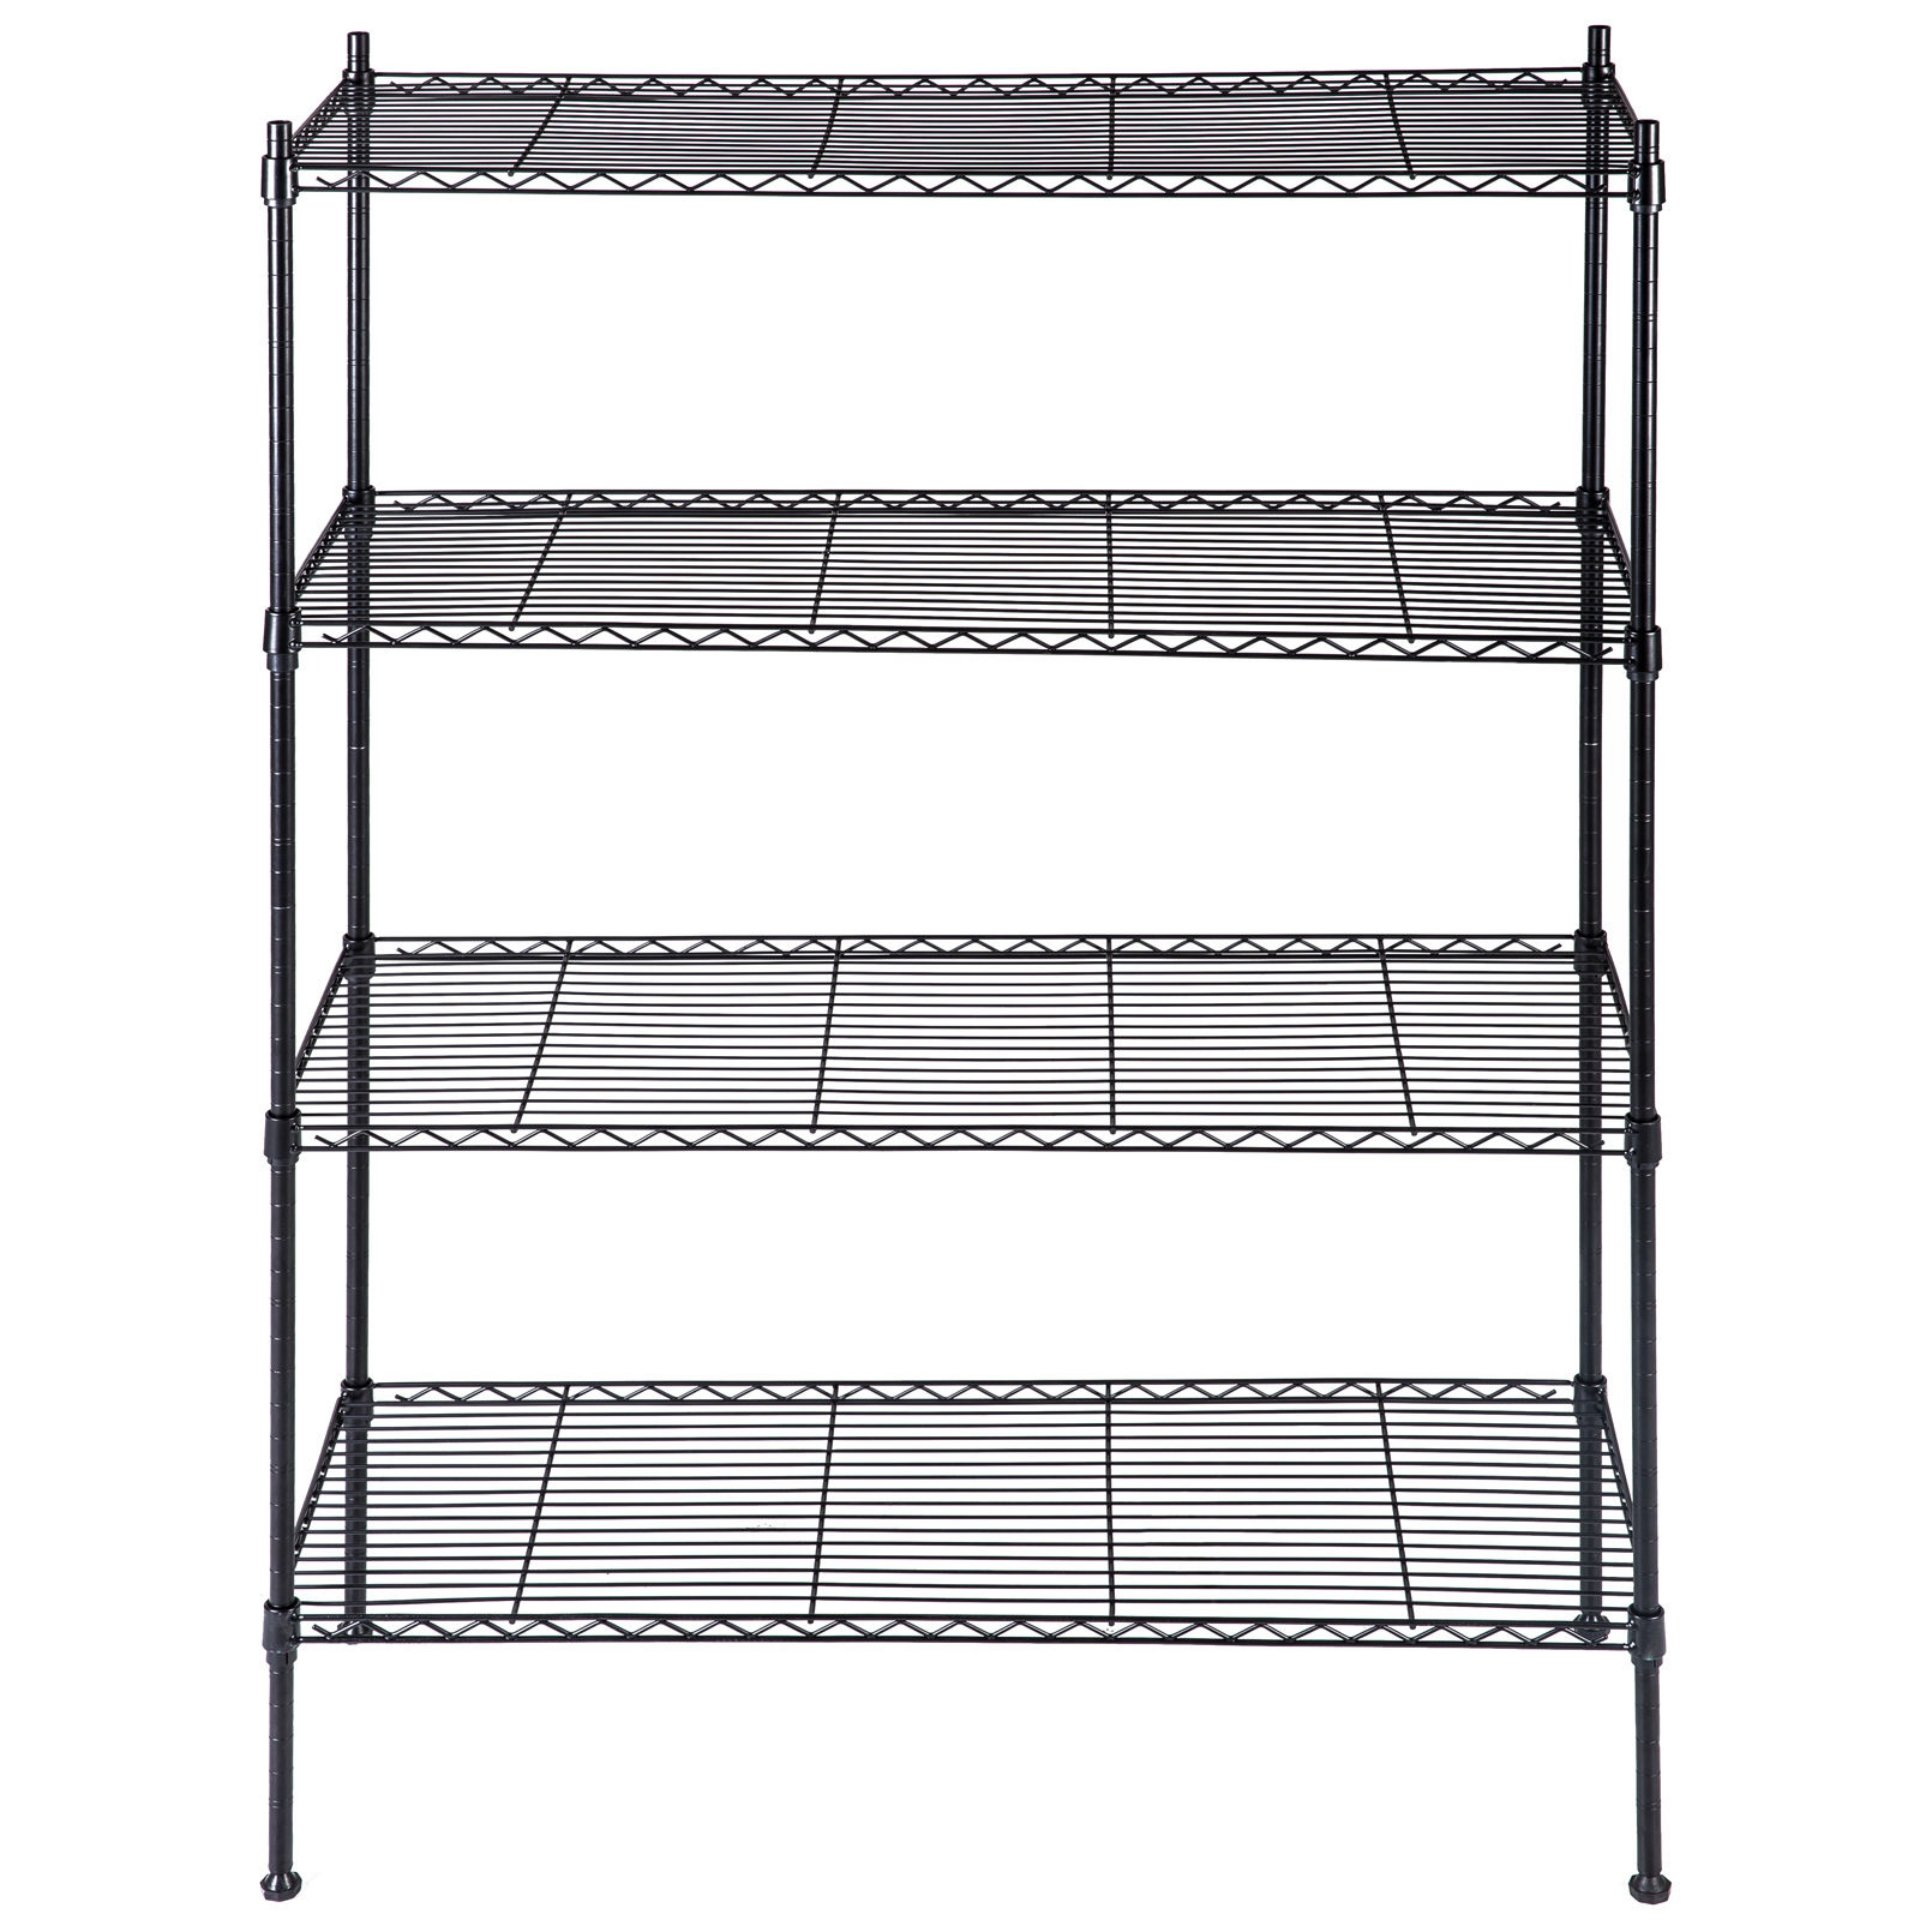 koonlert14 4 Tier Heavy Duty 55''x36''x14'' Layer Wire Shelving Rack Steel Shelf Adjustable Commercial Grade Chrome Wire Black #445